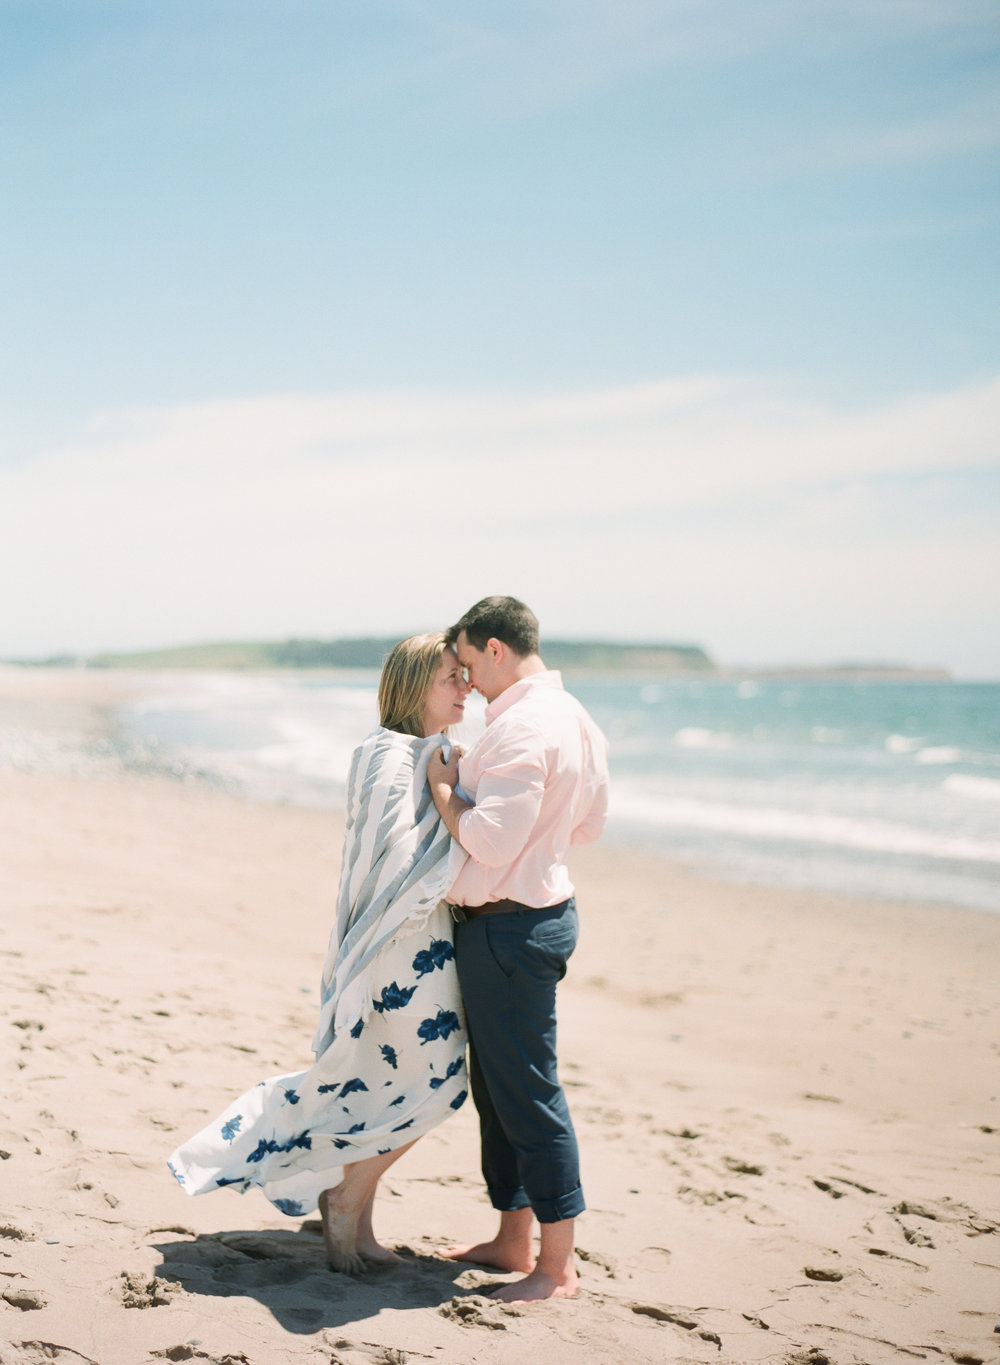 Jacqueline Anne Photography-Melissa and Daniel - Contax 645 - Beach Full Sun-11.jpg